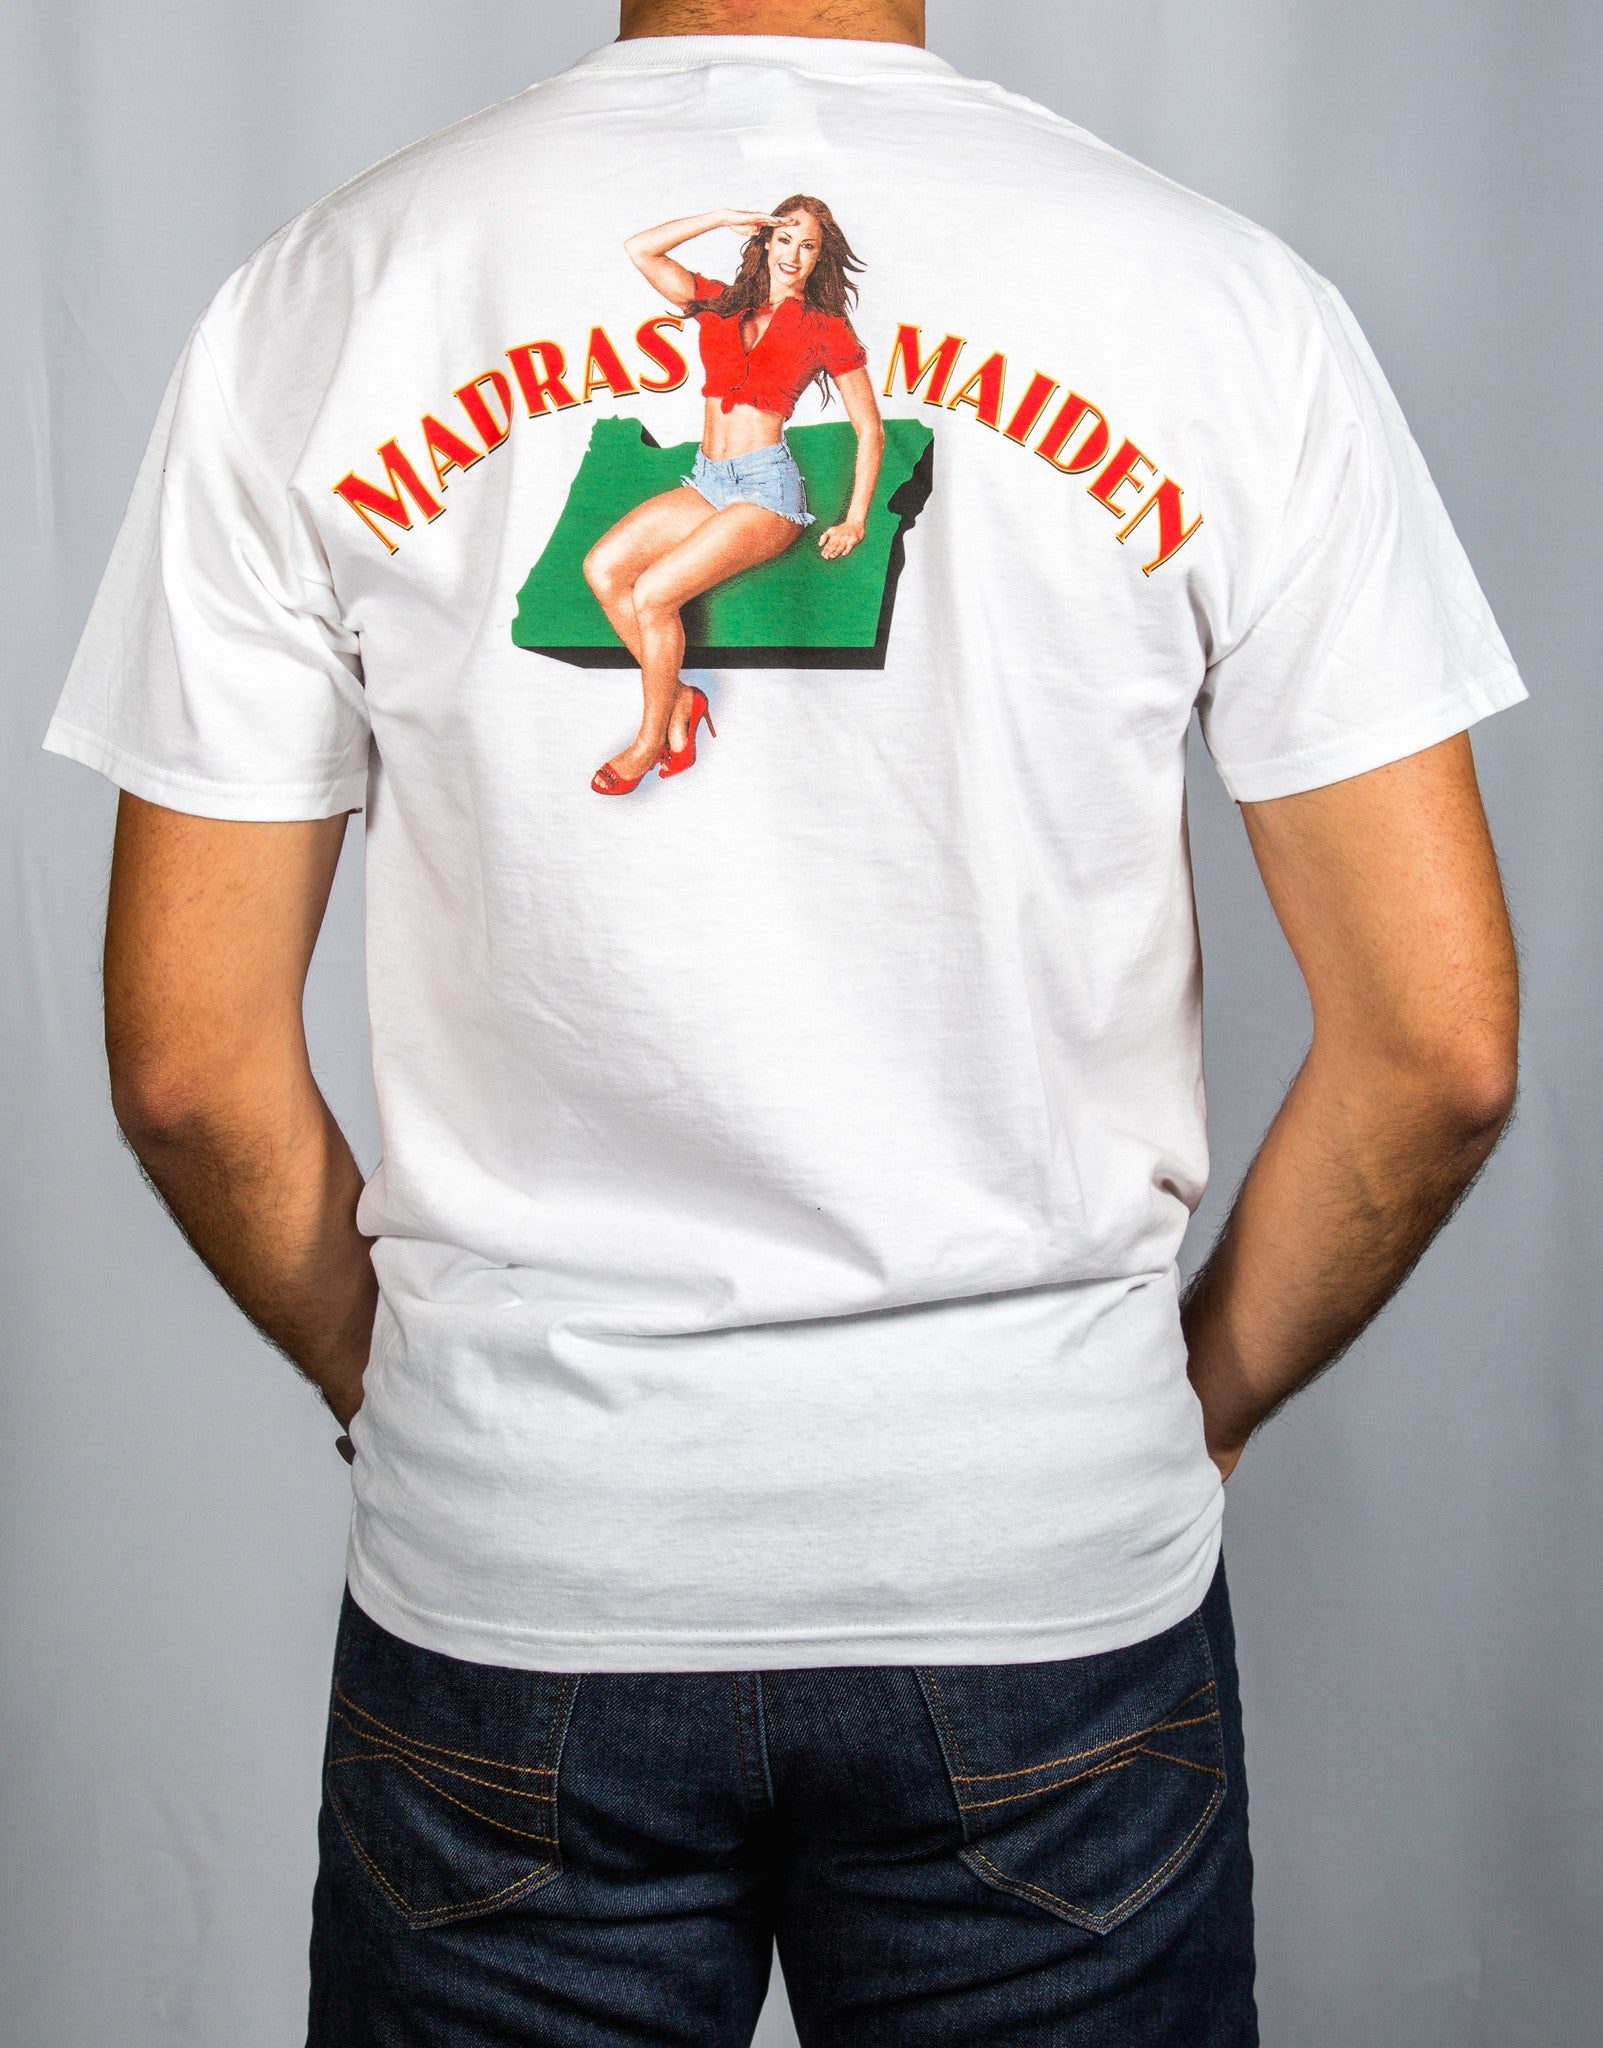 Madras Maiden T-Shirt